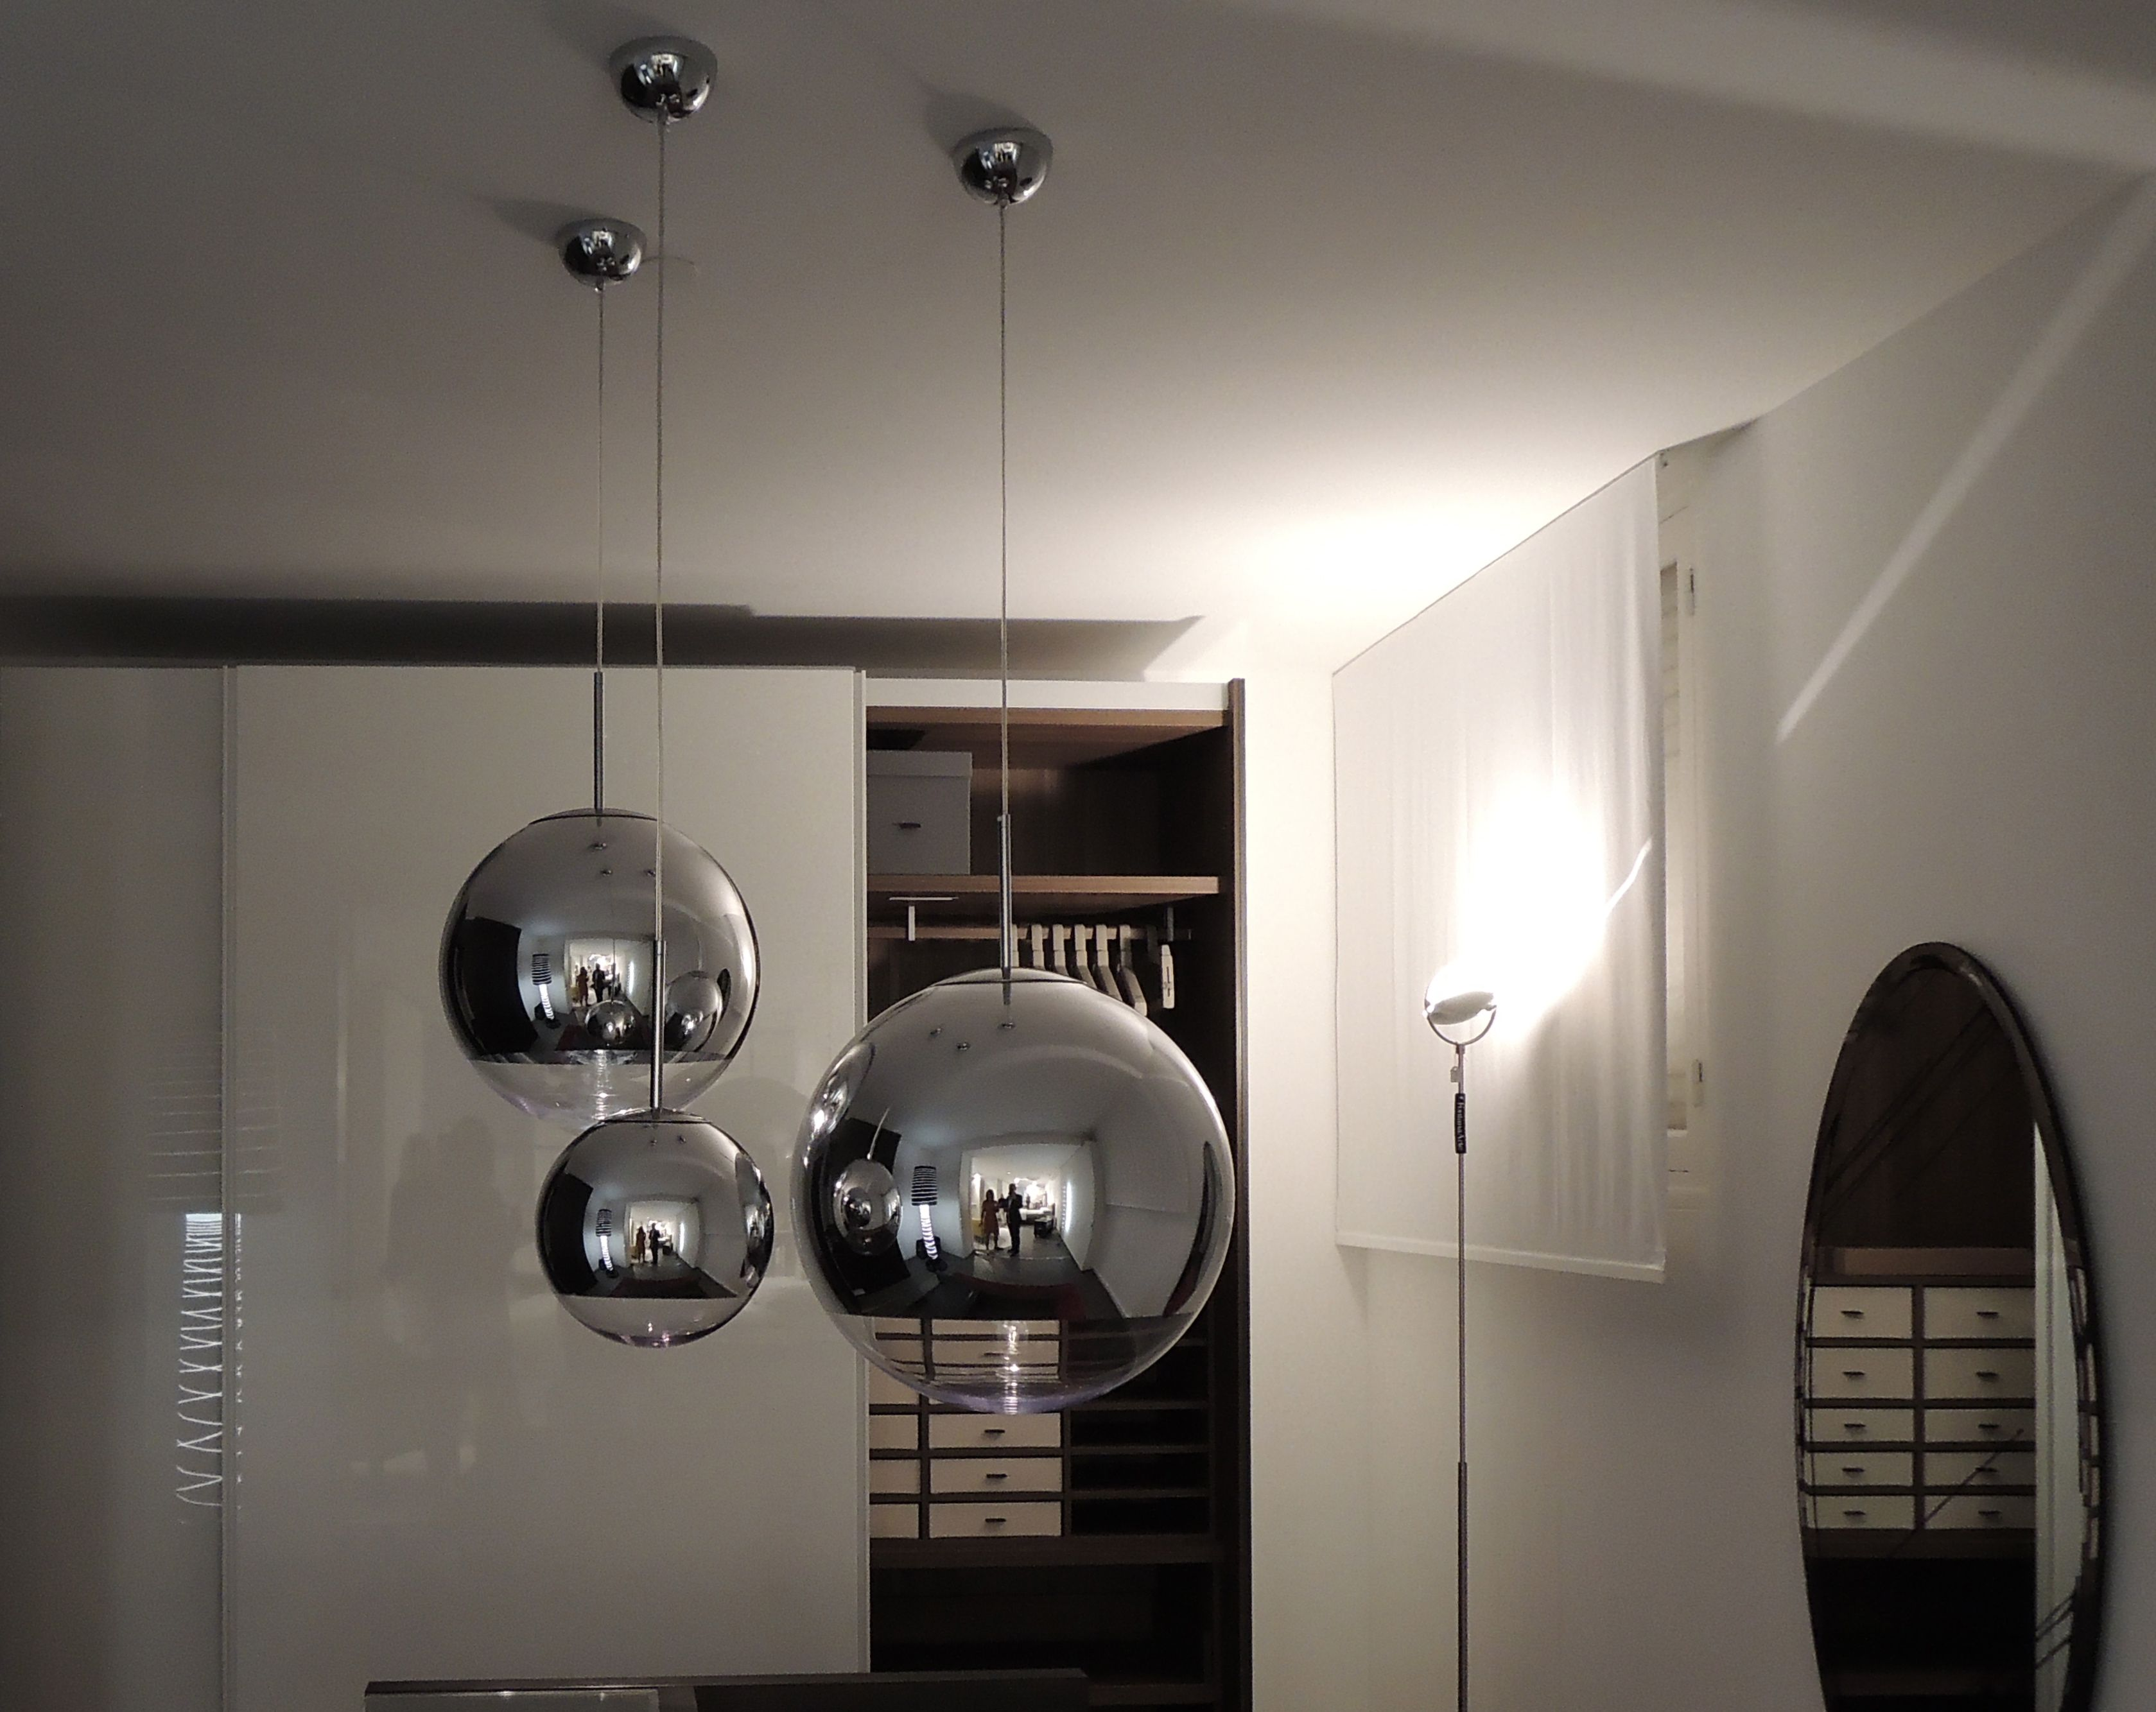 Luminaires Cannes Mirror Ball Tom Dixon Poliform Varenna By Martine Foubet